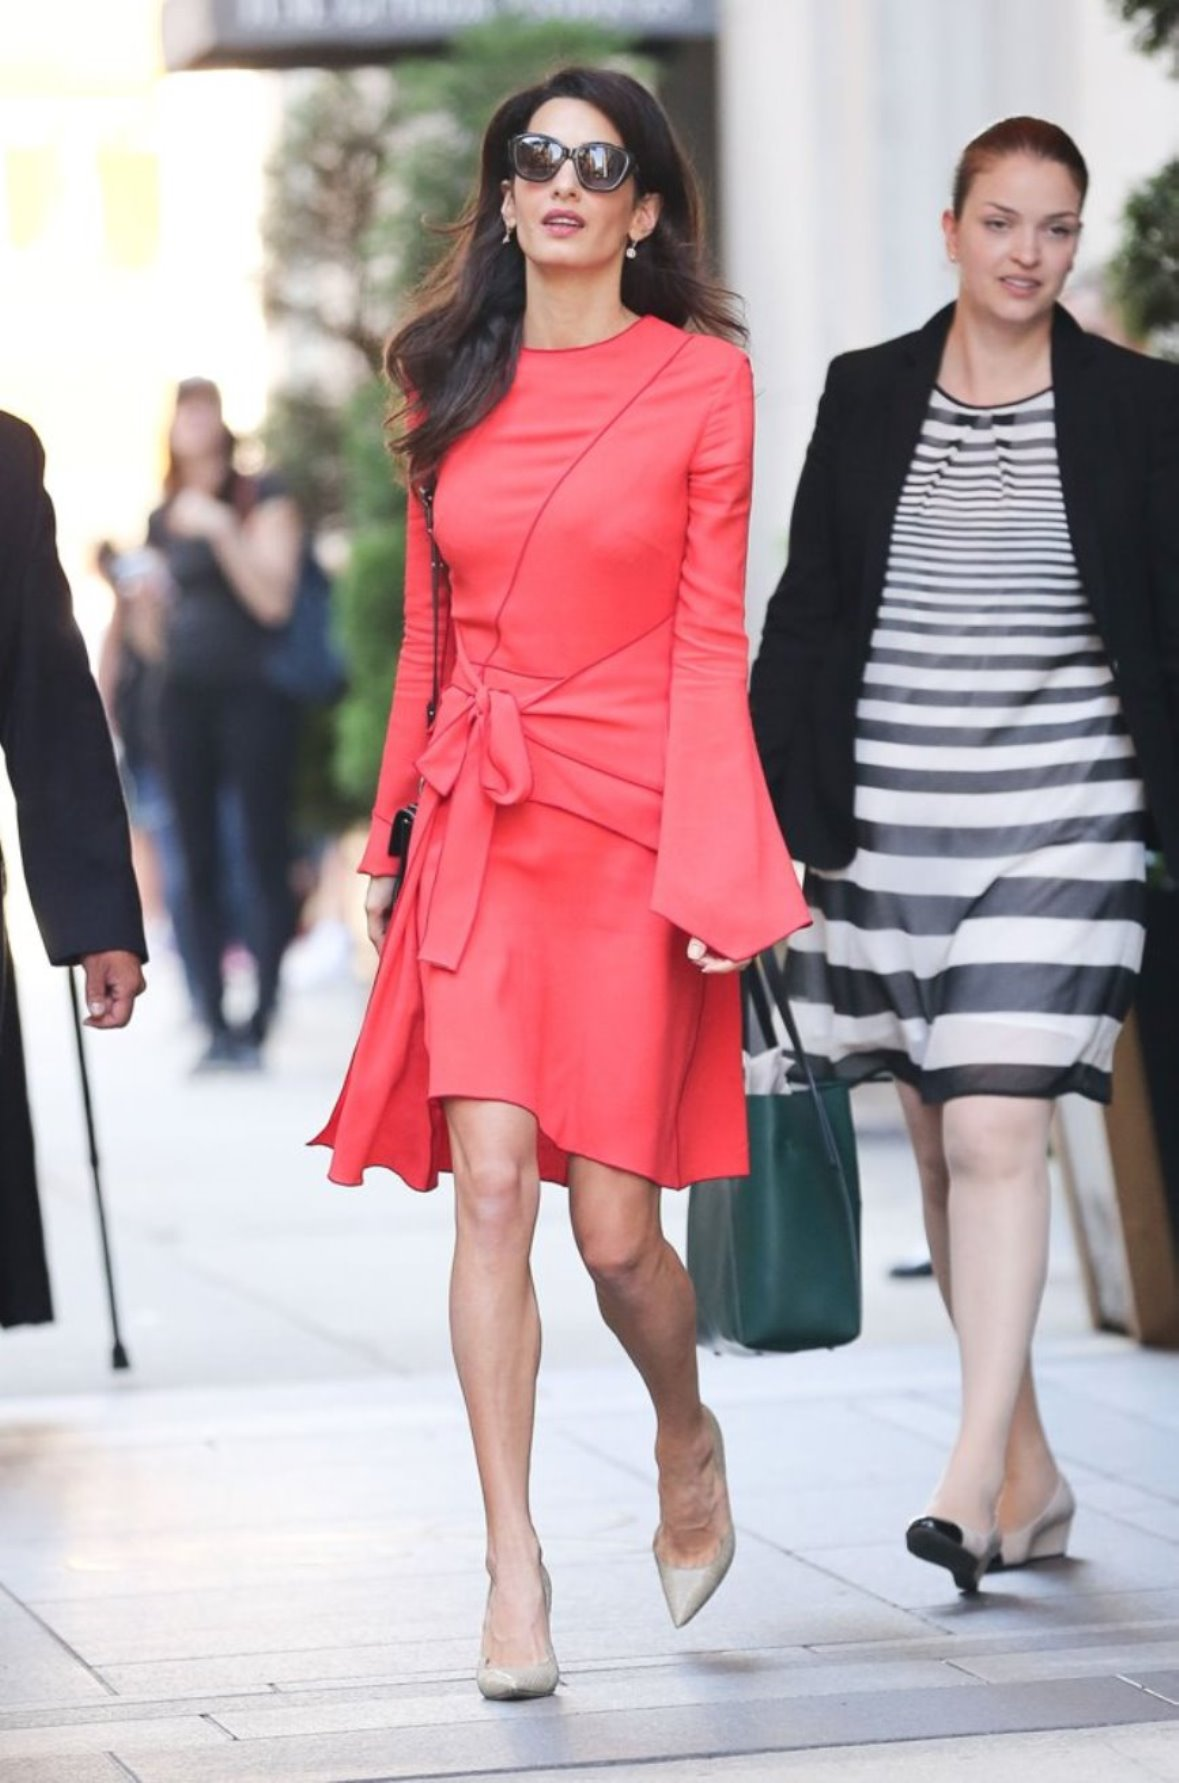 amal clooney spotted in proenza schouler leaving the carlyle hotel in new york amal. Black Bedroom Furniture Sets. Home Design Ideas